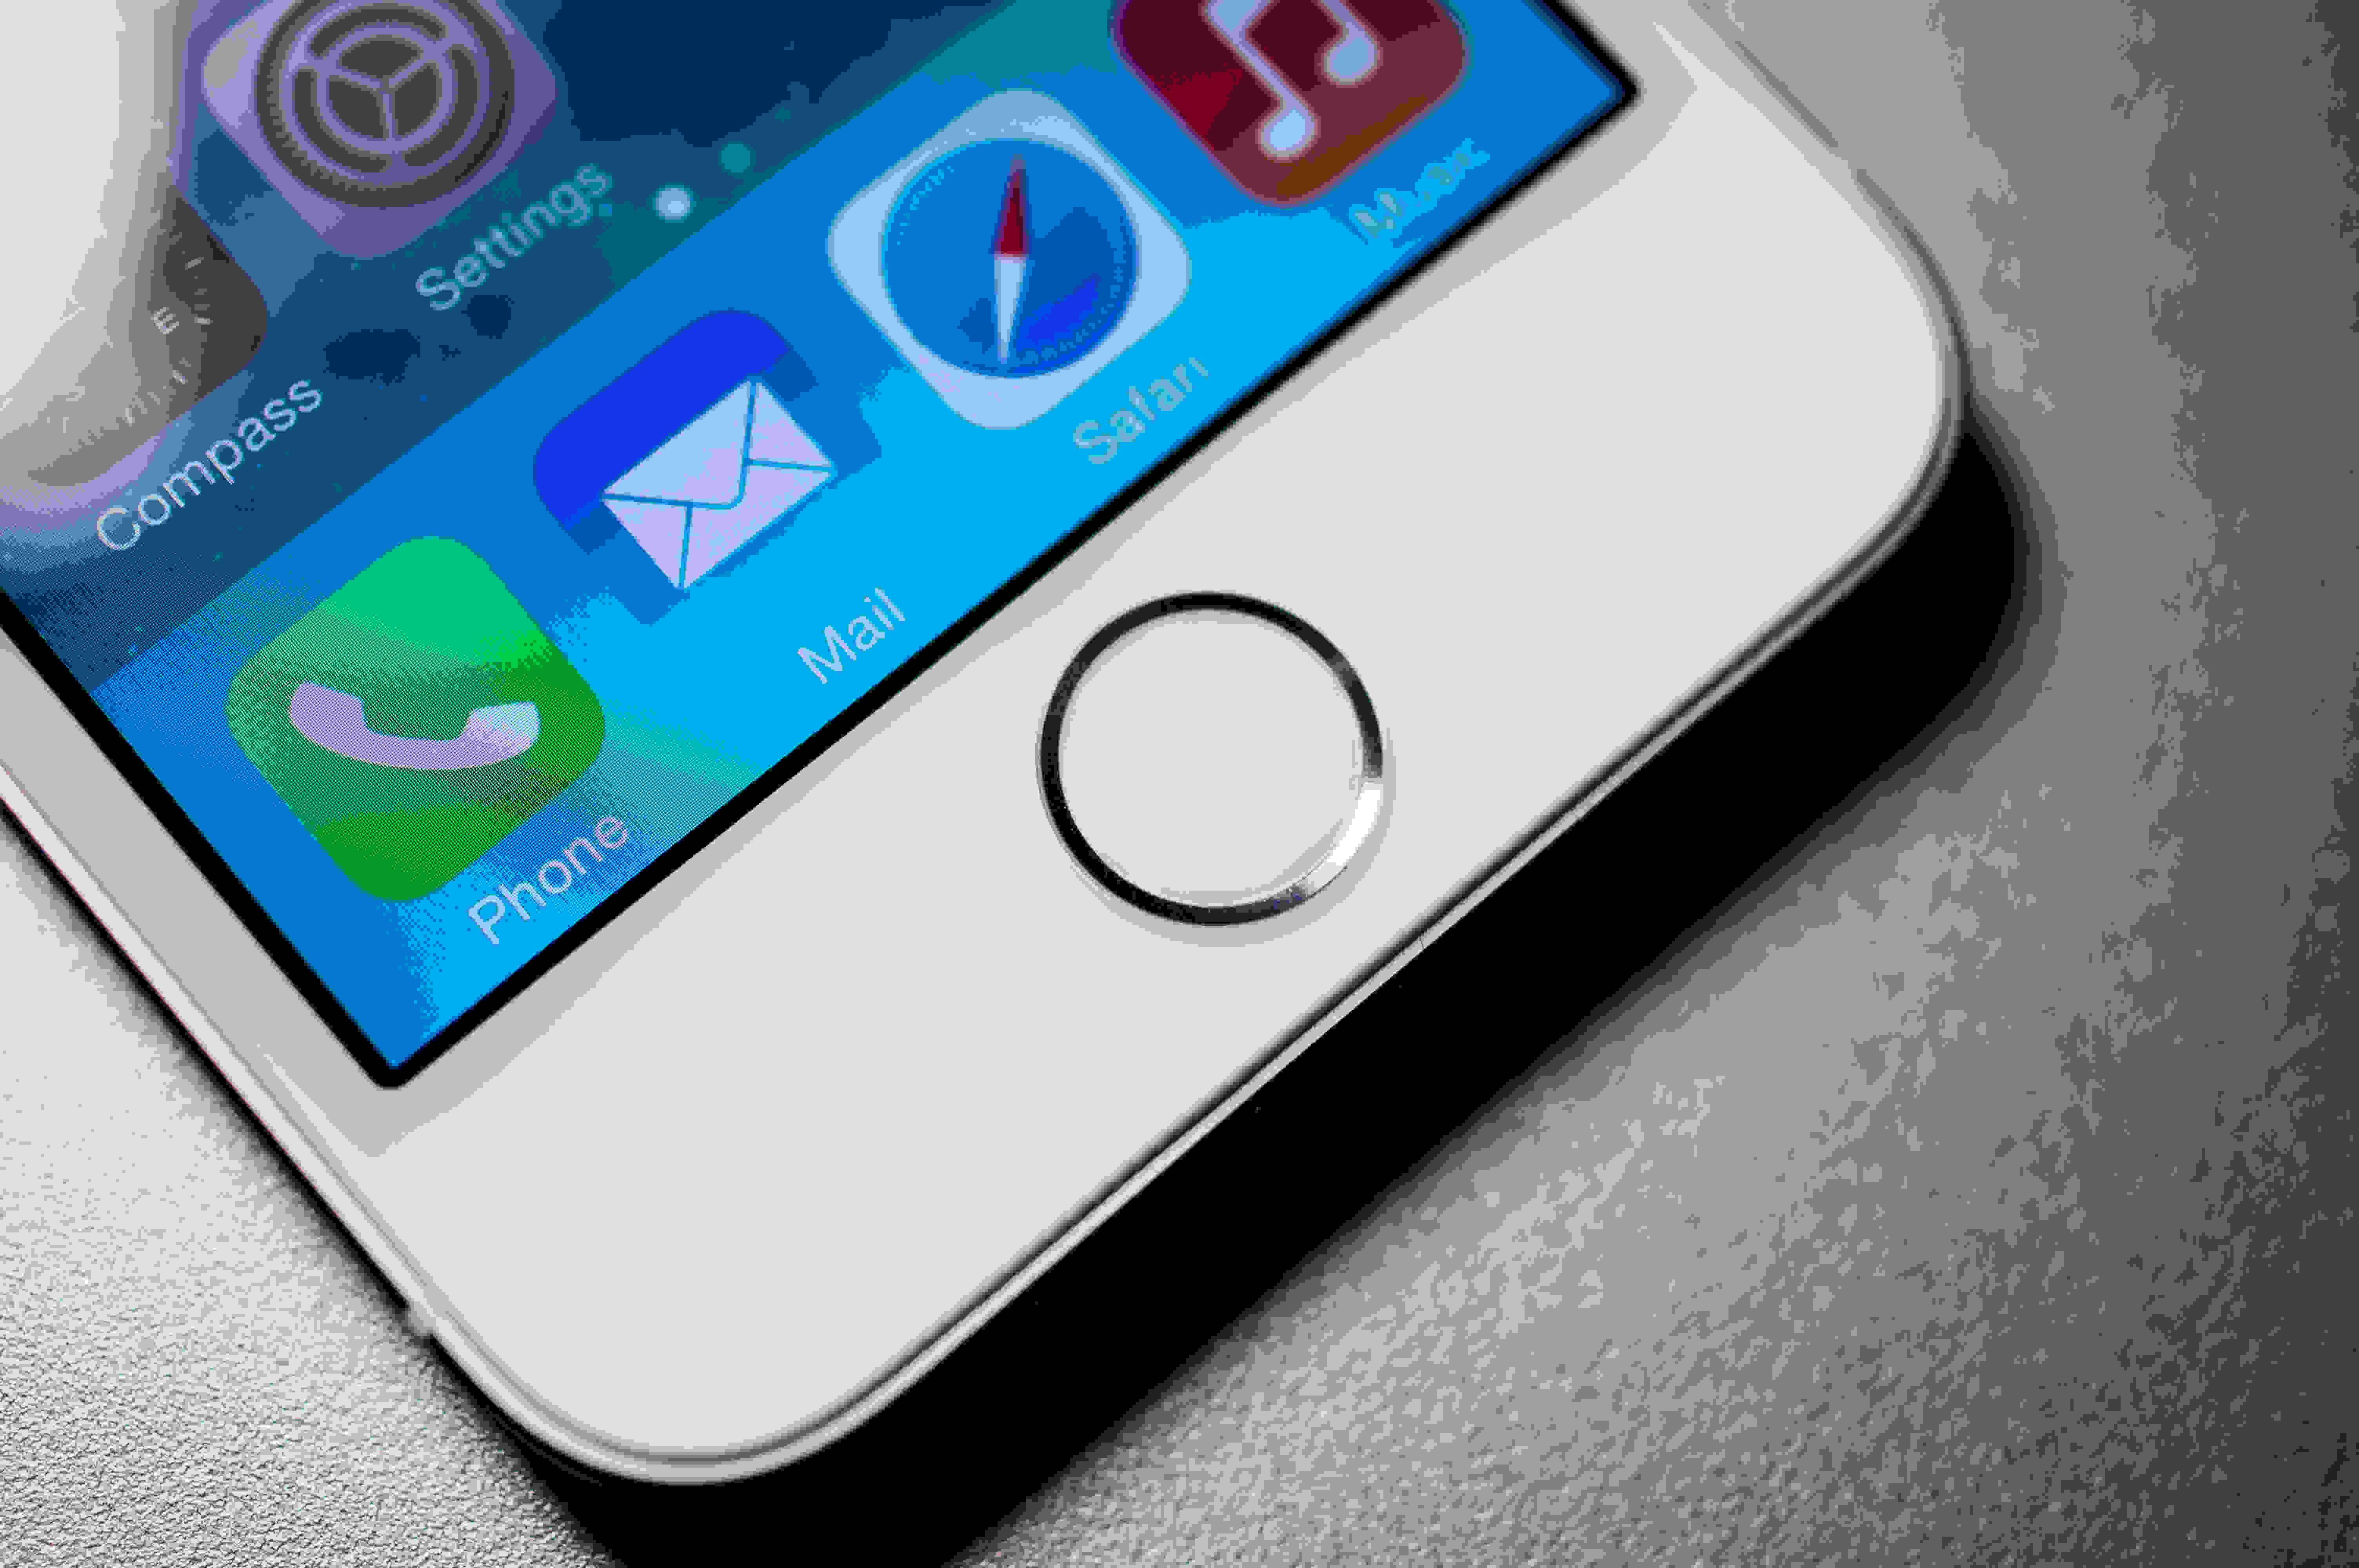 A picture of the Apple iPhone 5s' home button.